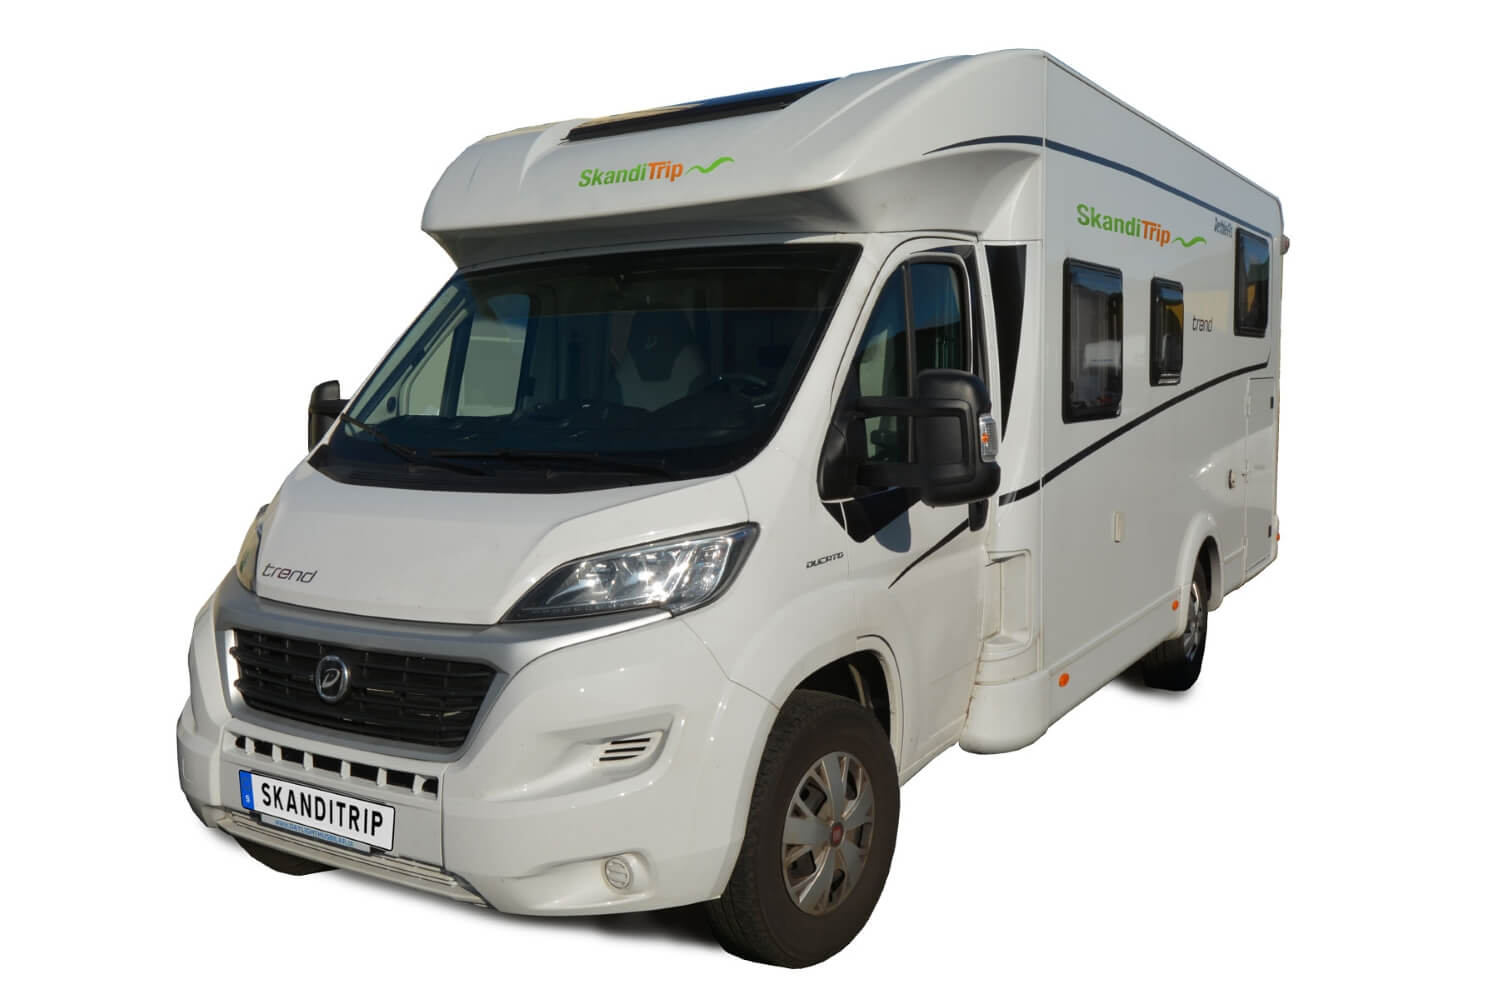 SkandiTrip small motorhome model